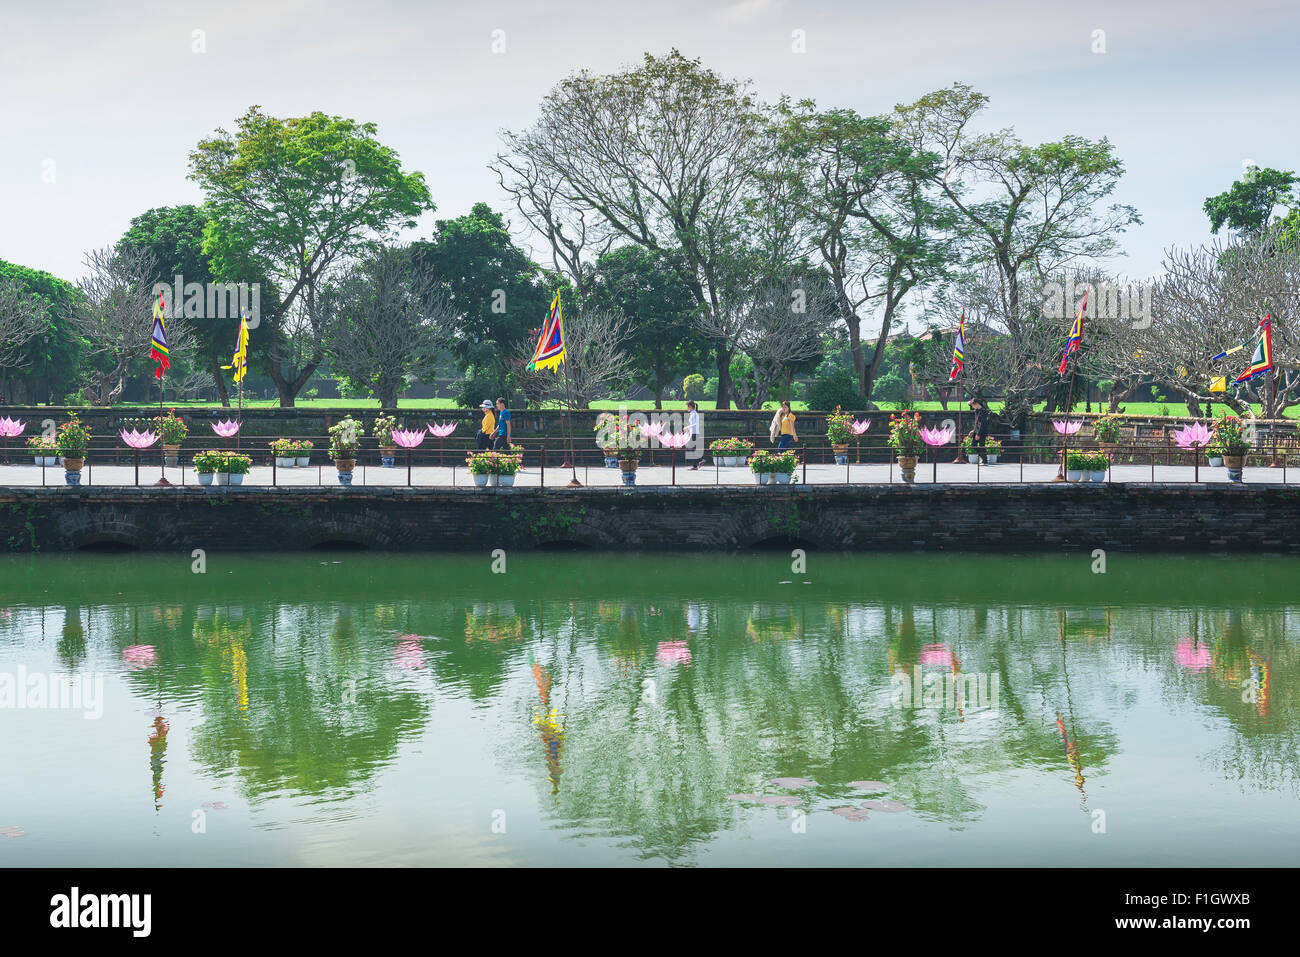 Hue Vietnam citadel, tourists walk alongside one of many lakes inside the Imperial Citadel in Hue, central Vietnam. - Stock Image